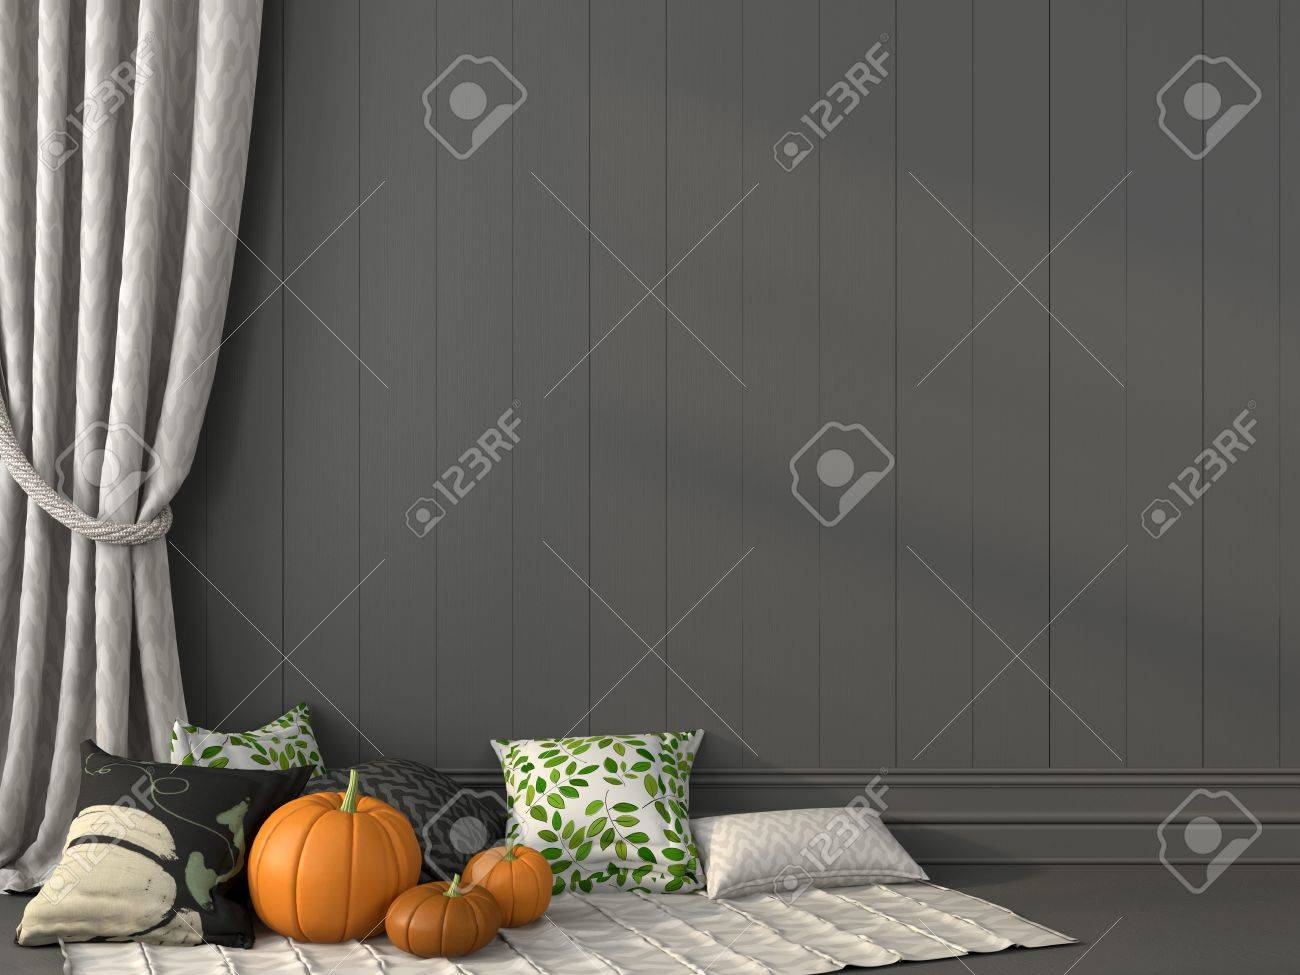 pillows with print topical for halloween against the backdrop of gray wall and curtain stock photo